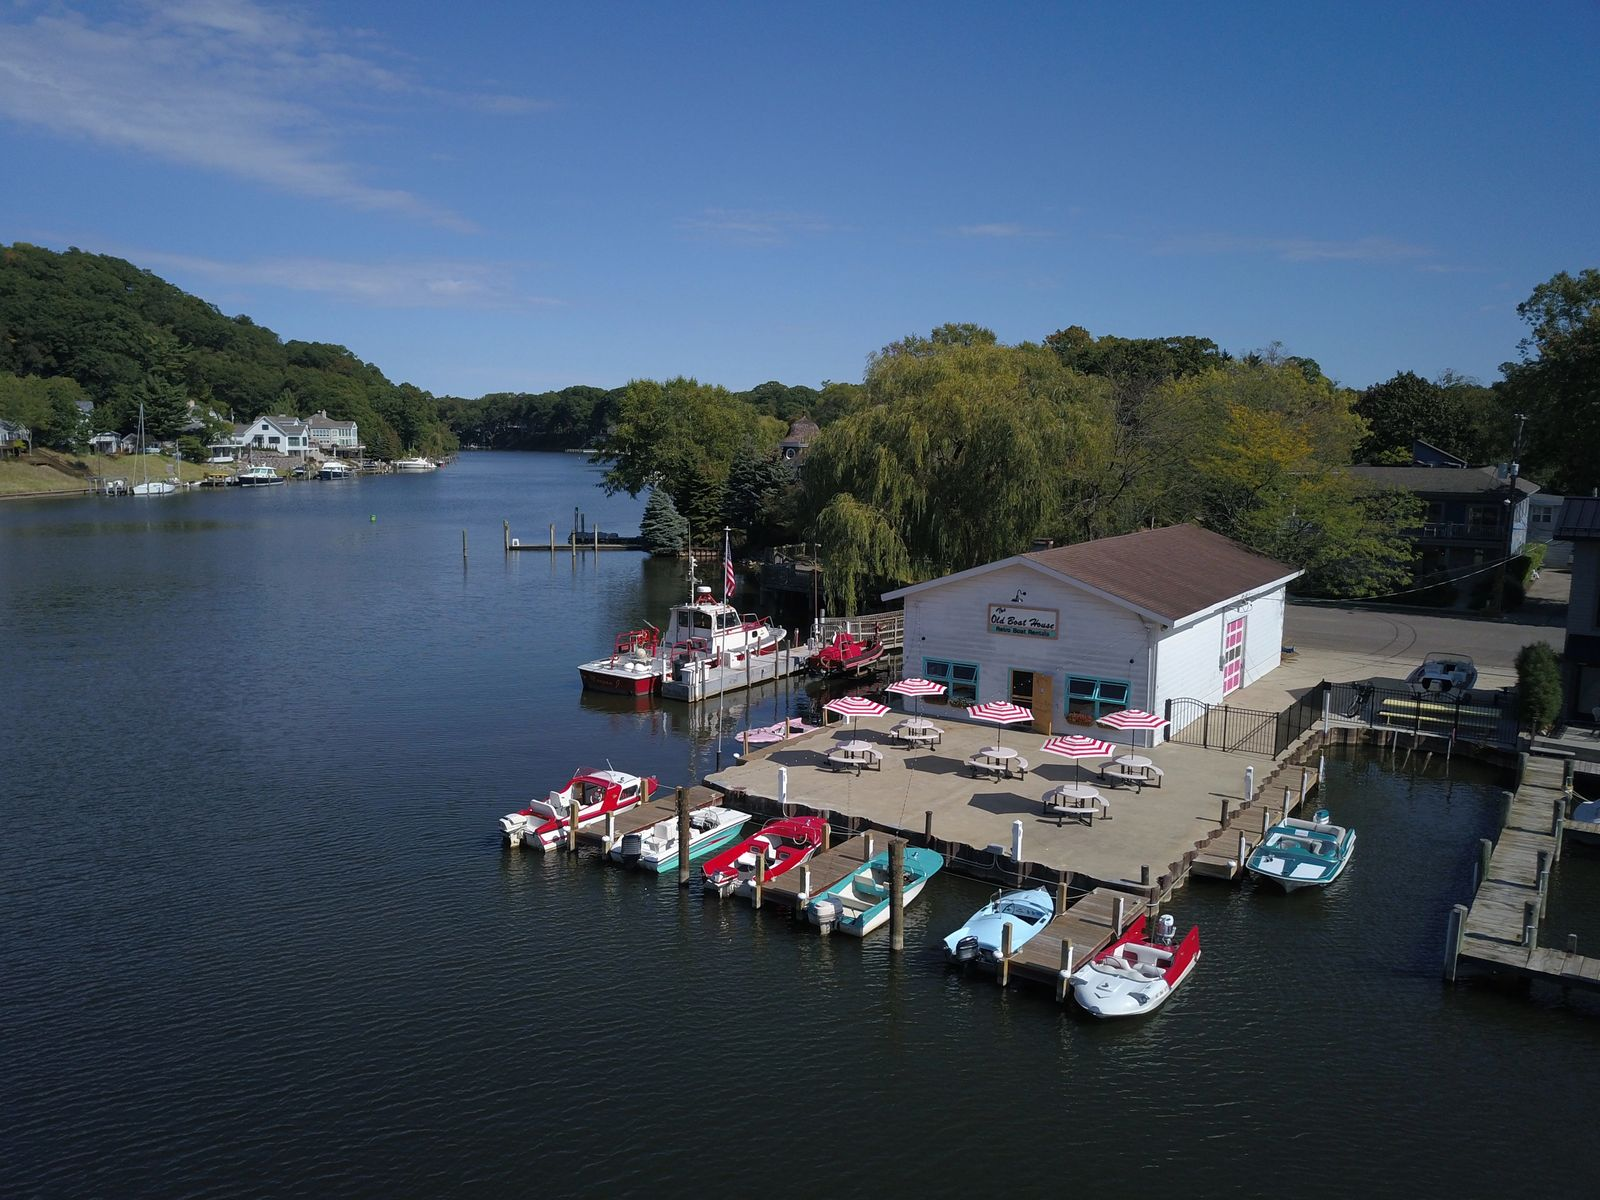 The Old Boat House & Retro Boat Rentals From over the Kalamazoo River